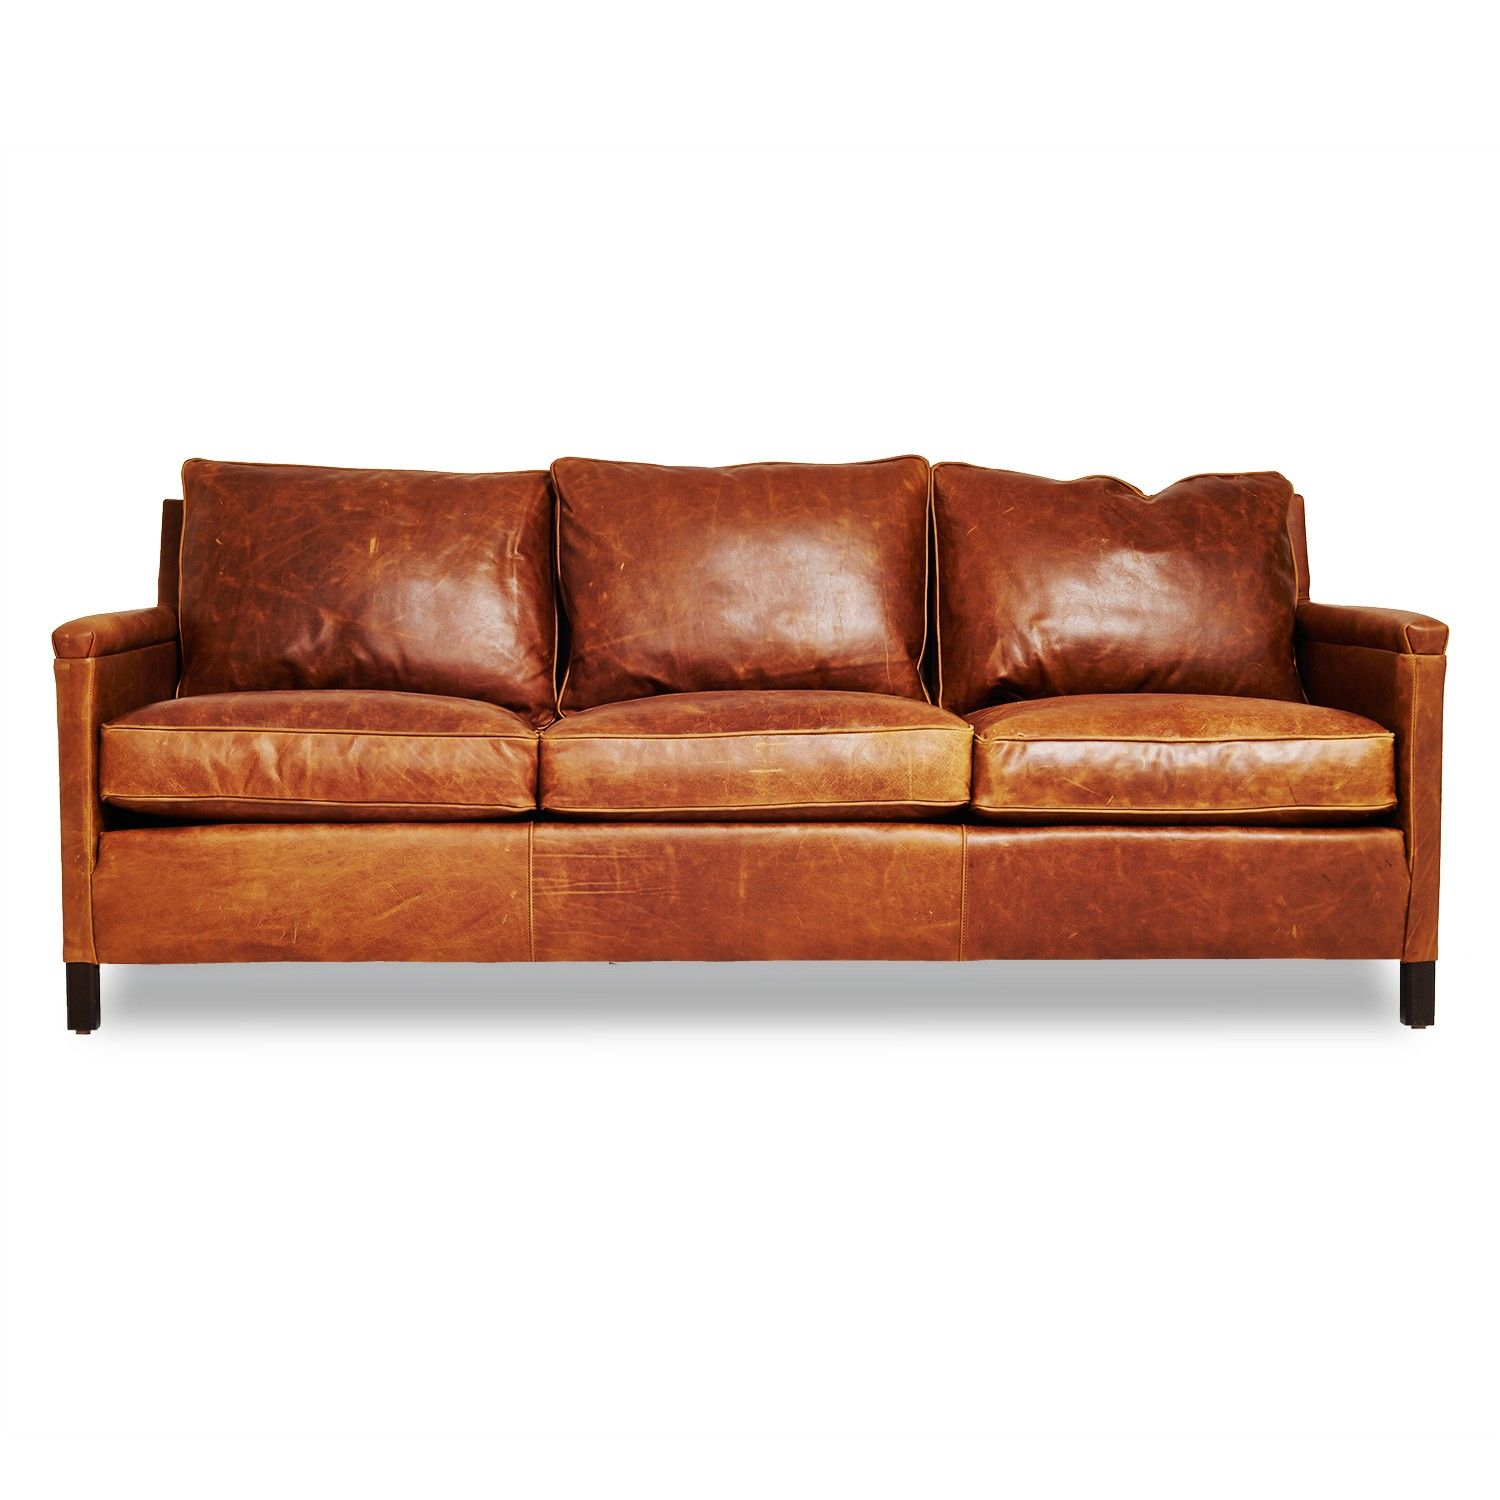 brown vine leather sofa chicago hours the heston gives an urban edge to classic